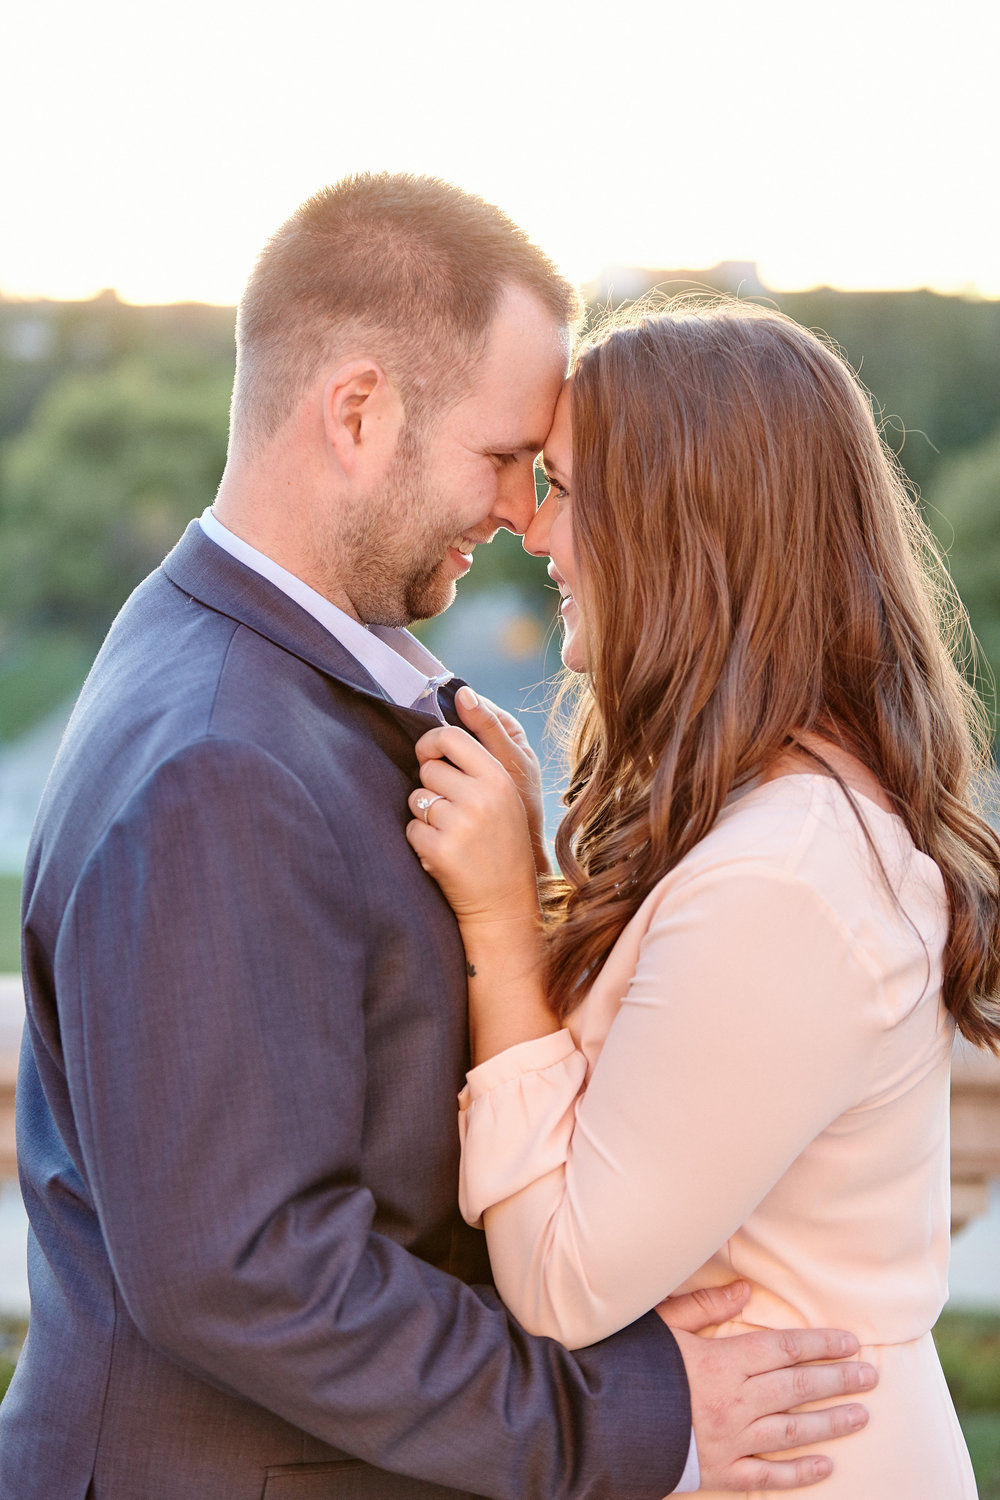 Iowa City Engagement Session by St Louis Wedding Photographers Oldani Photography 54.jpg